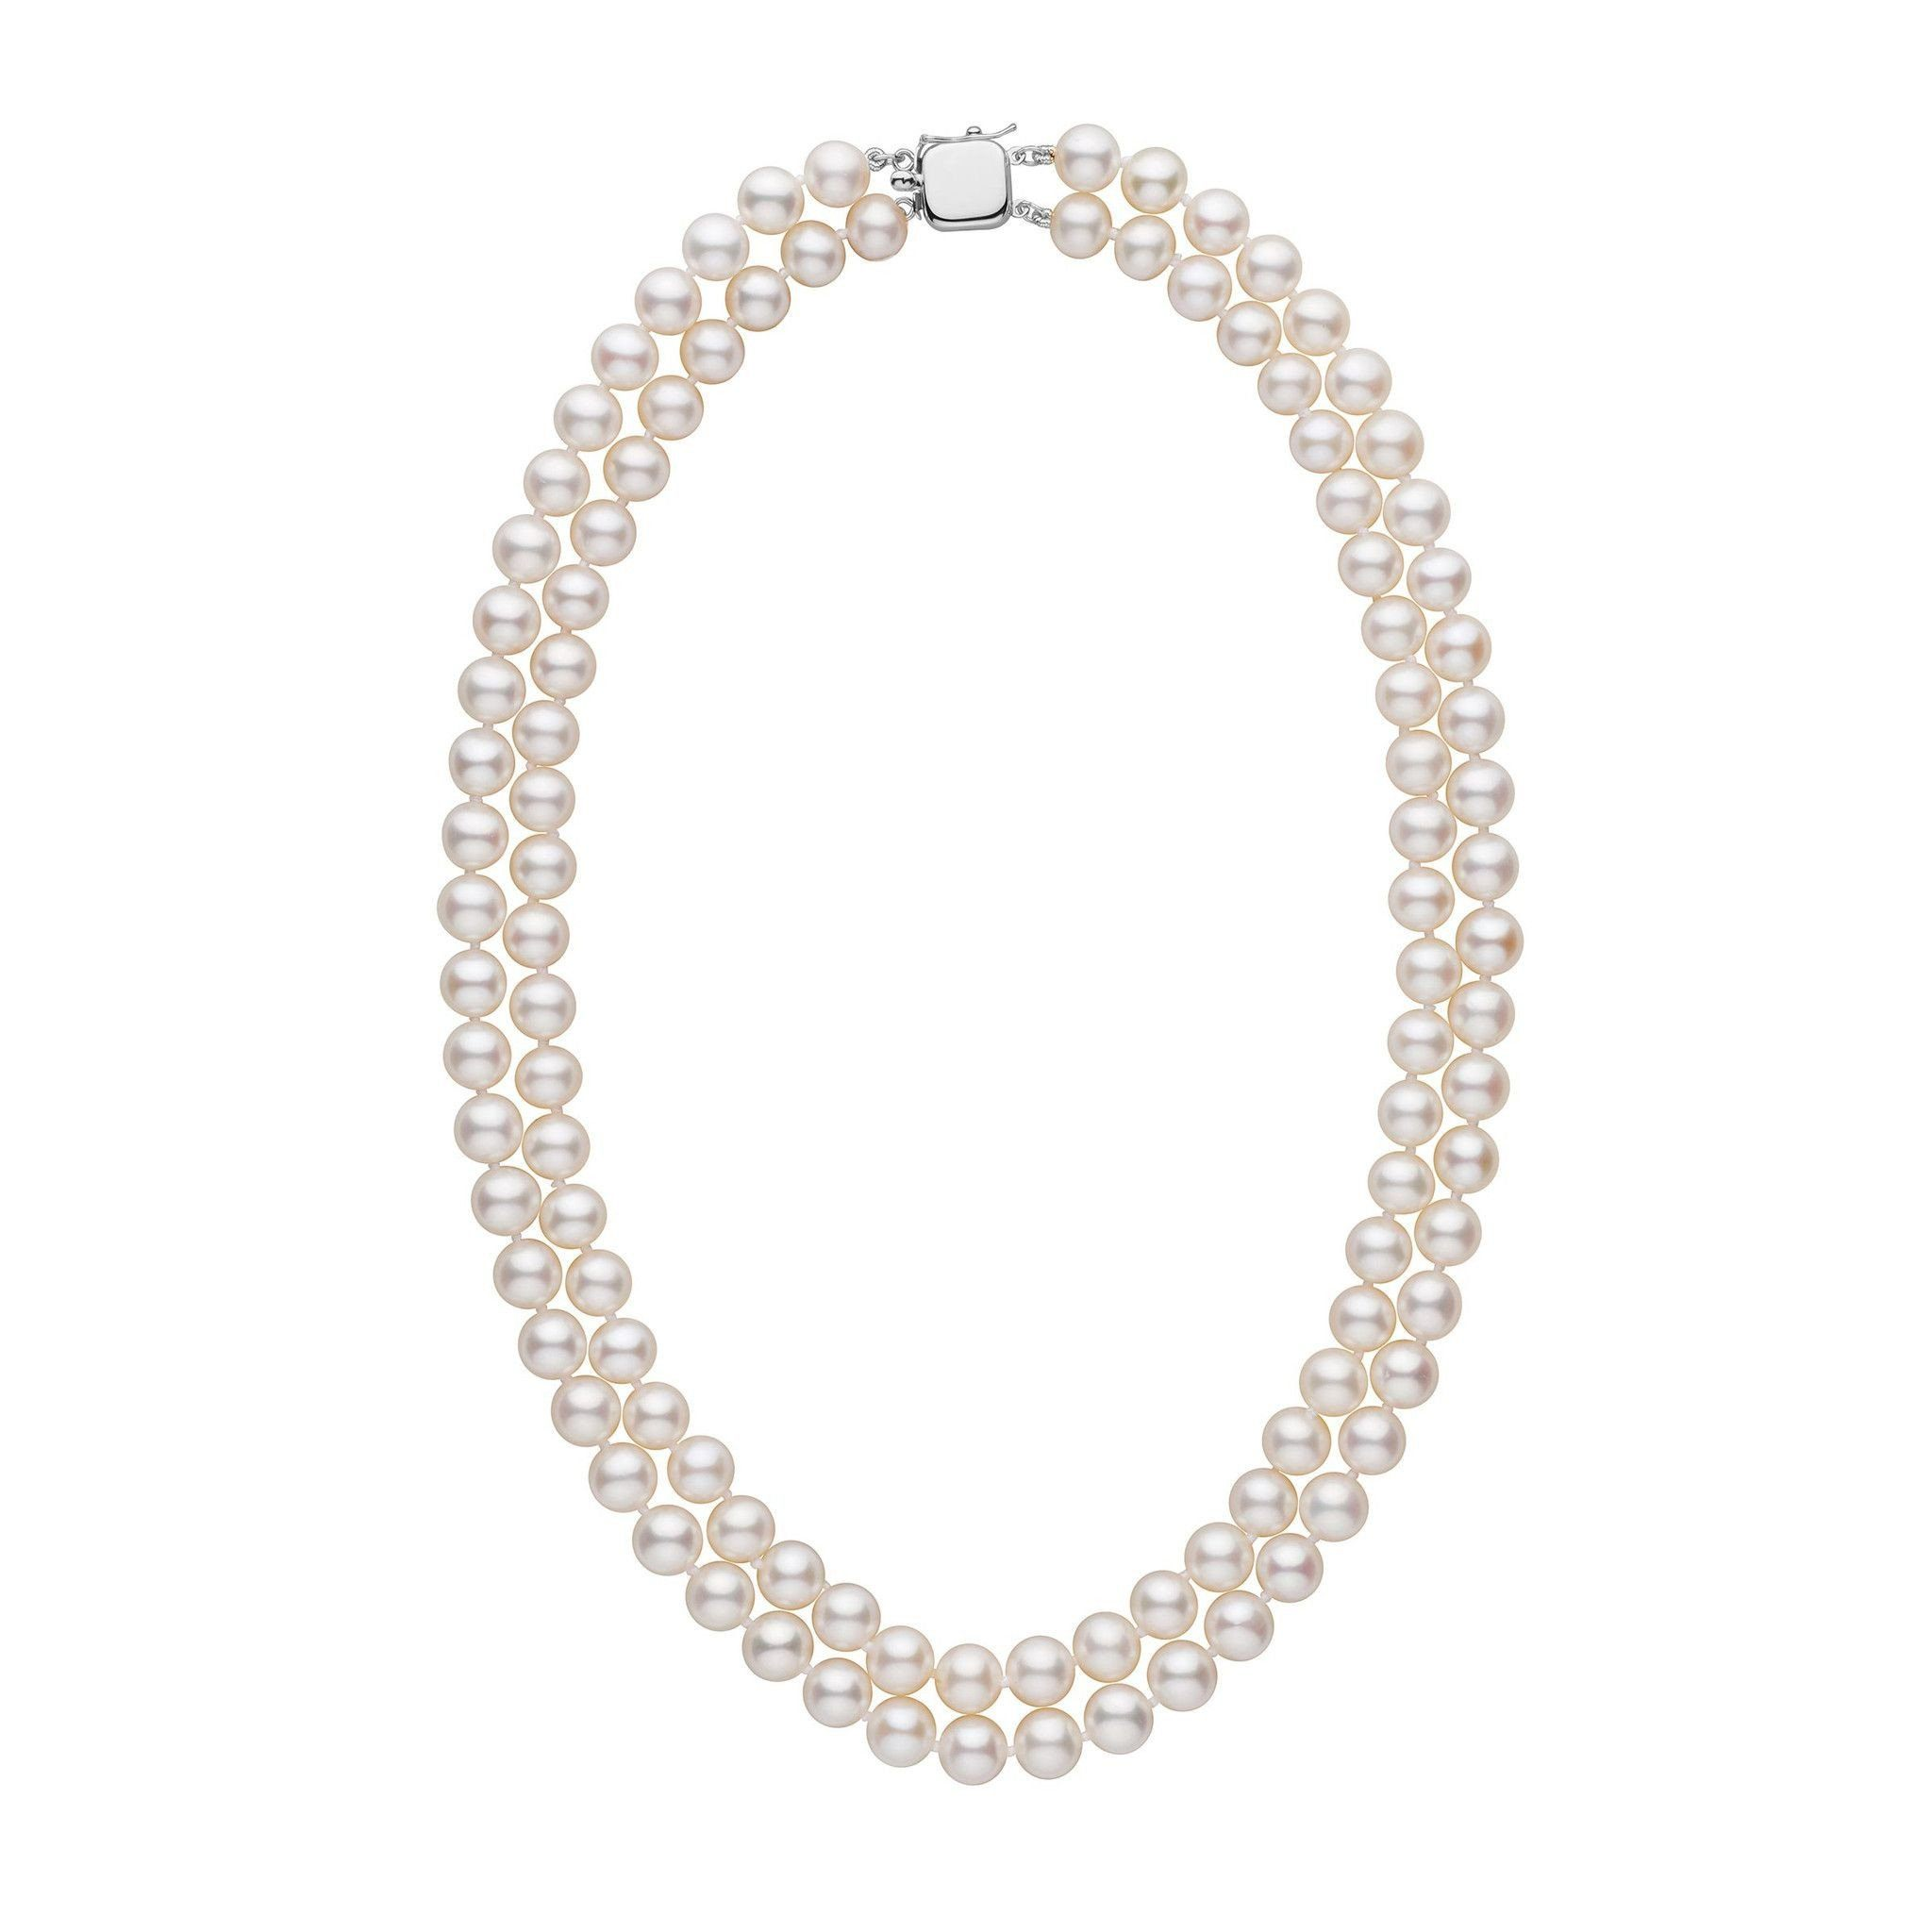 7.5-8.0 mm Double Strand AAA White Freshwater Pearl Necklace